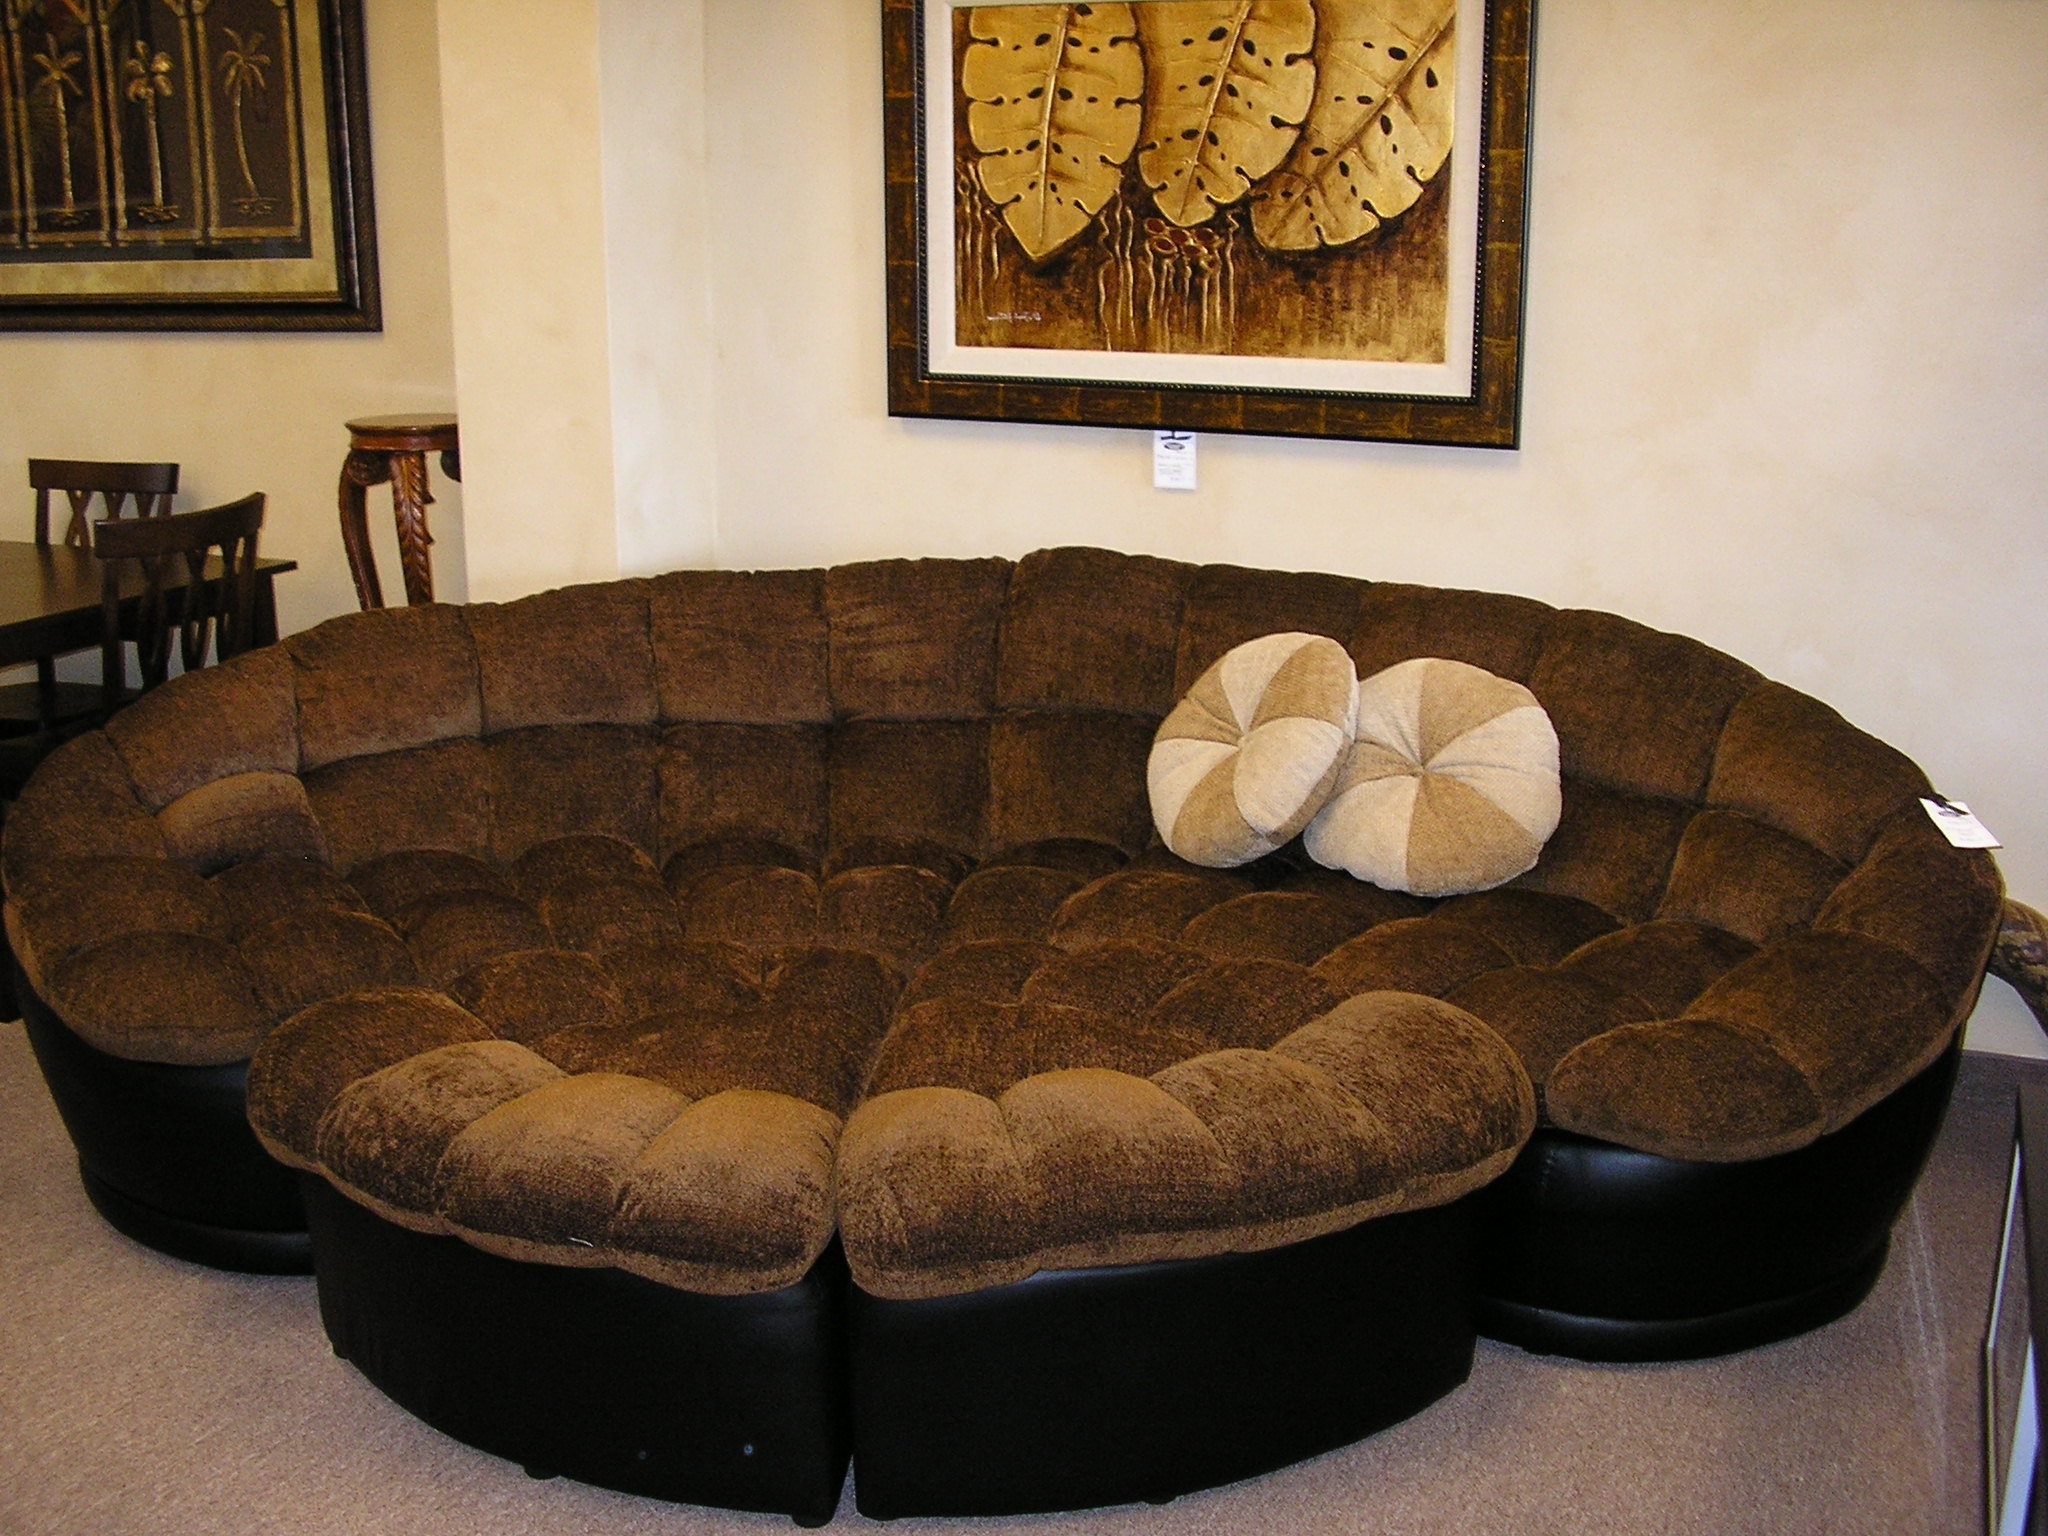 Round Sectional Sofas Pertaining To Popular Sectional Sofa Design: Beautiful Round Sectional Sofas Couches And (View 15 of 15)